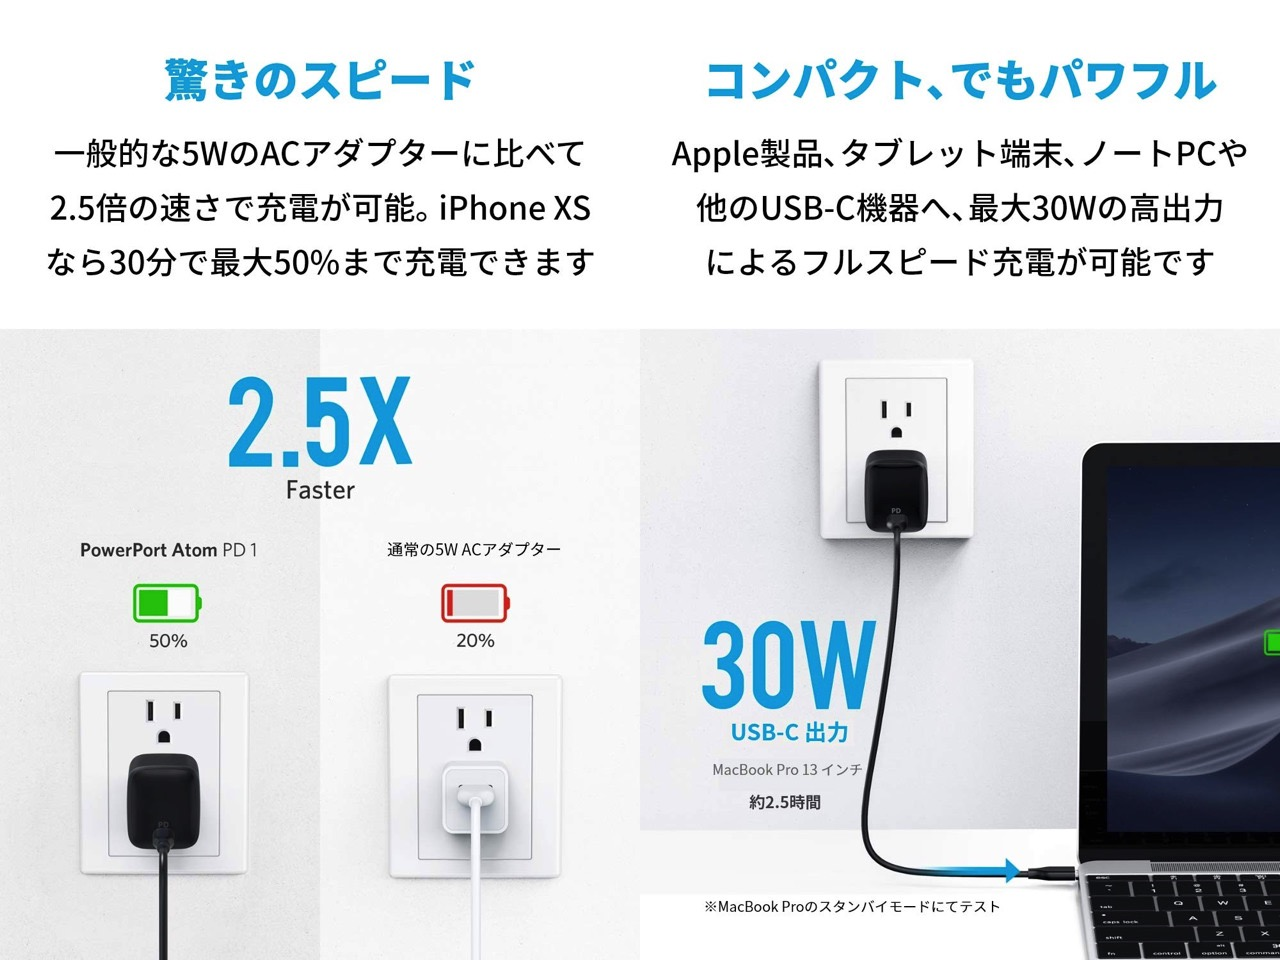 Anker powerport atom pd 1 black2